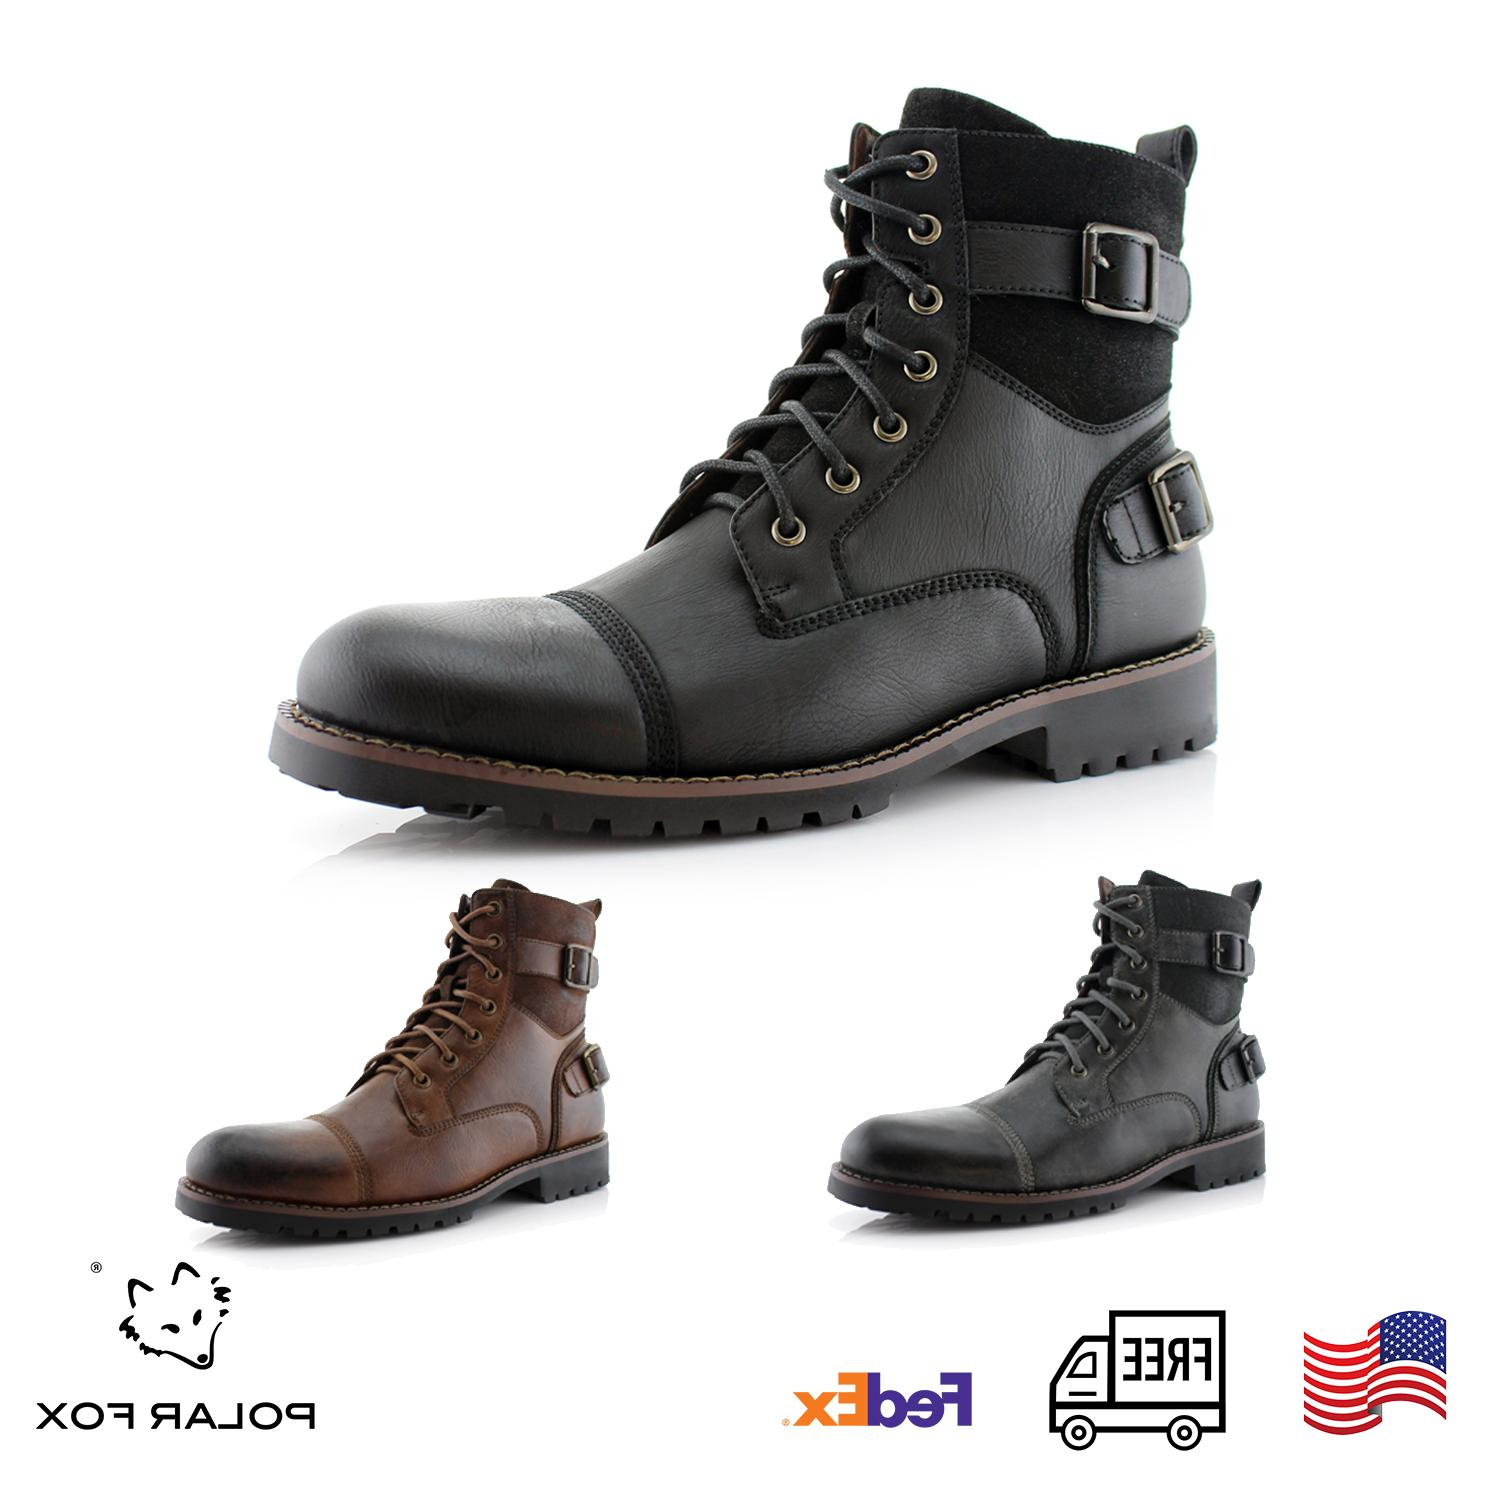 Men's Motorcycle Boots Riding Buckle Touring